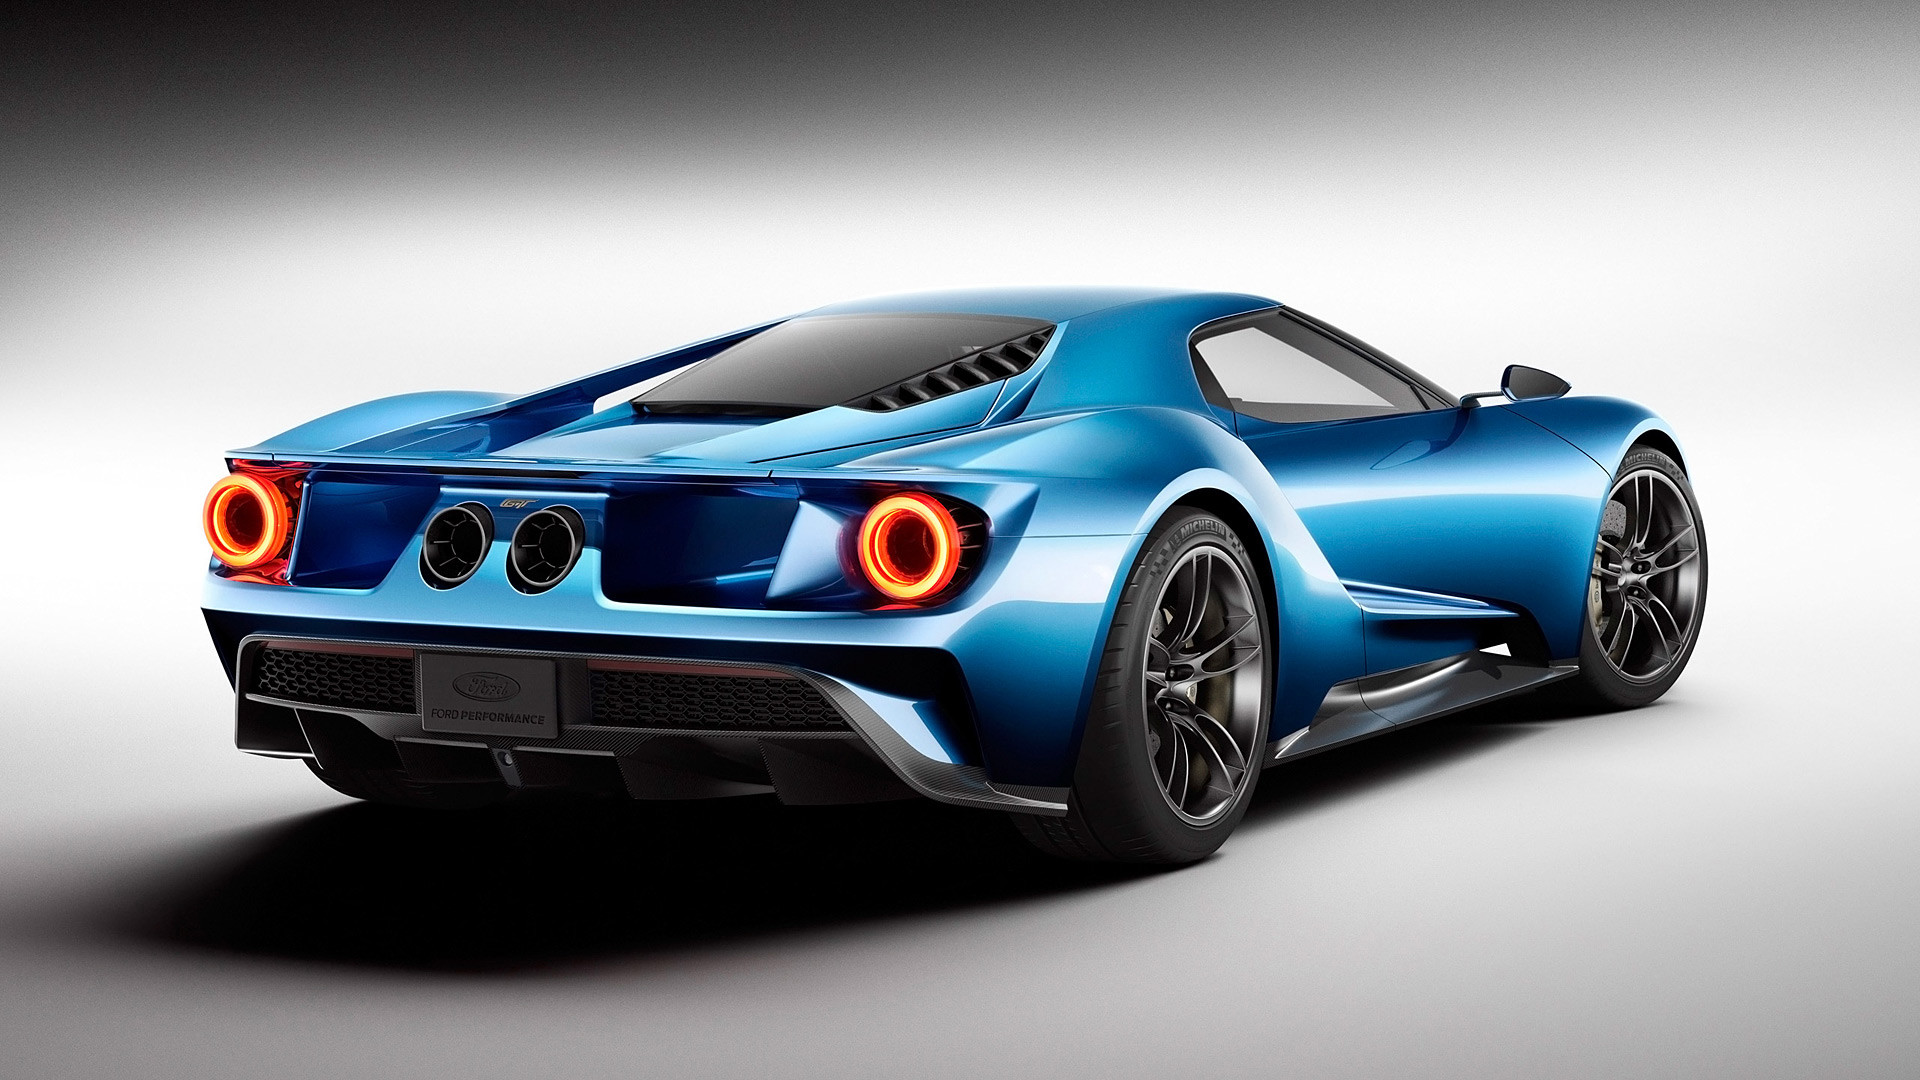 1920x1080 2017 Ford GT picture.